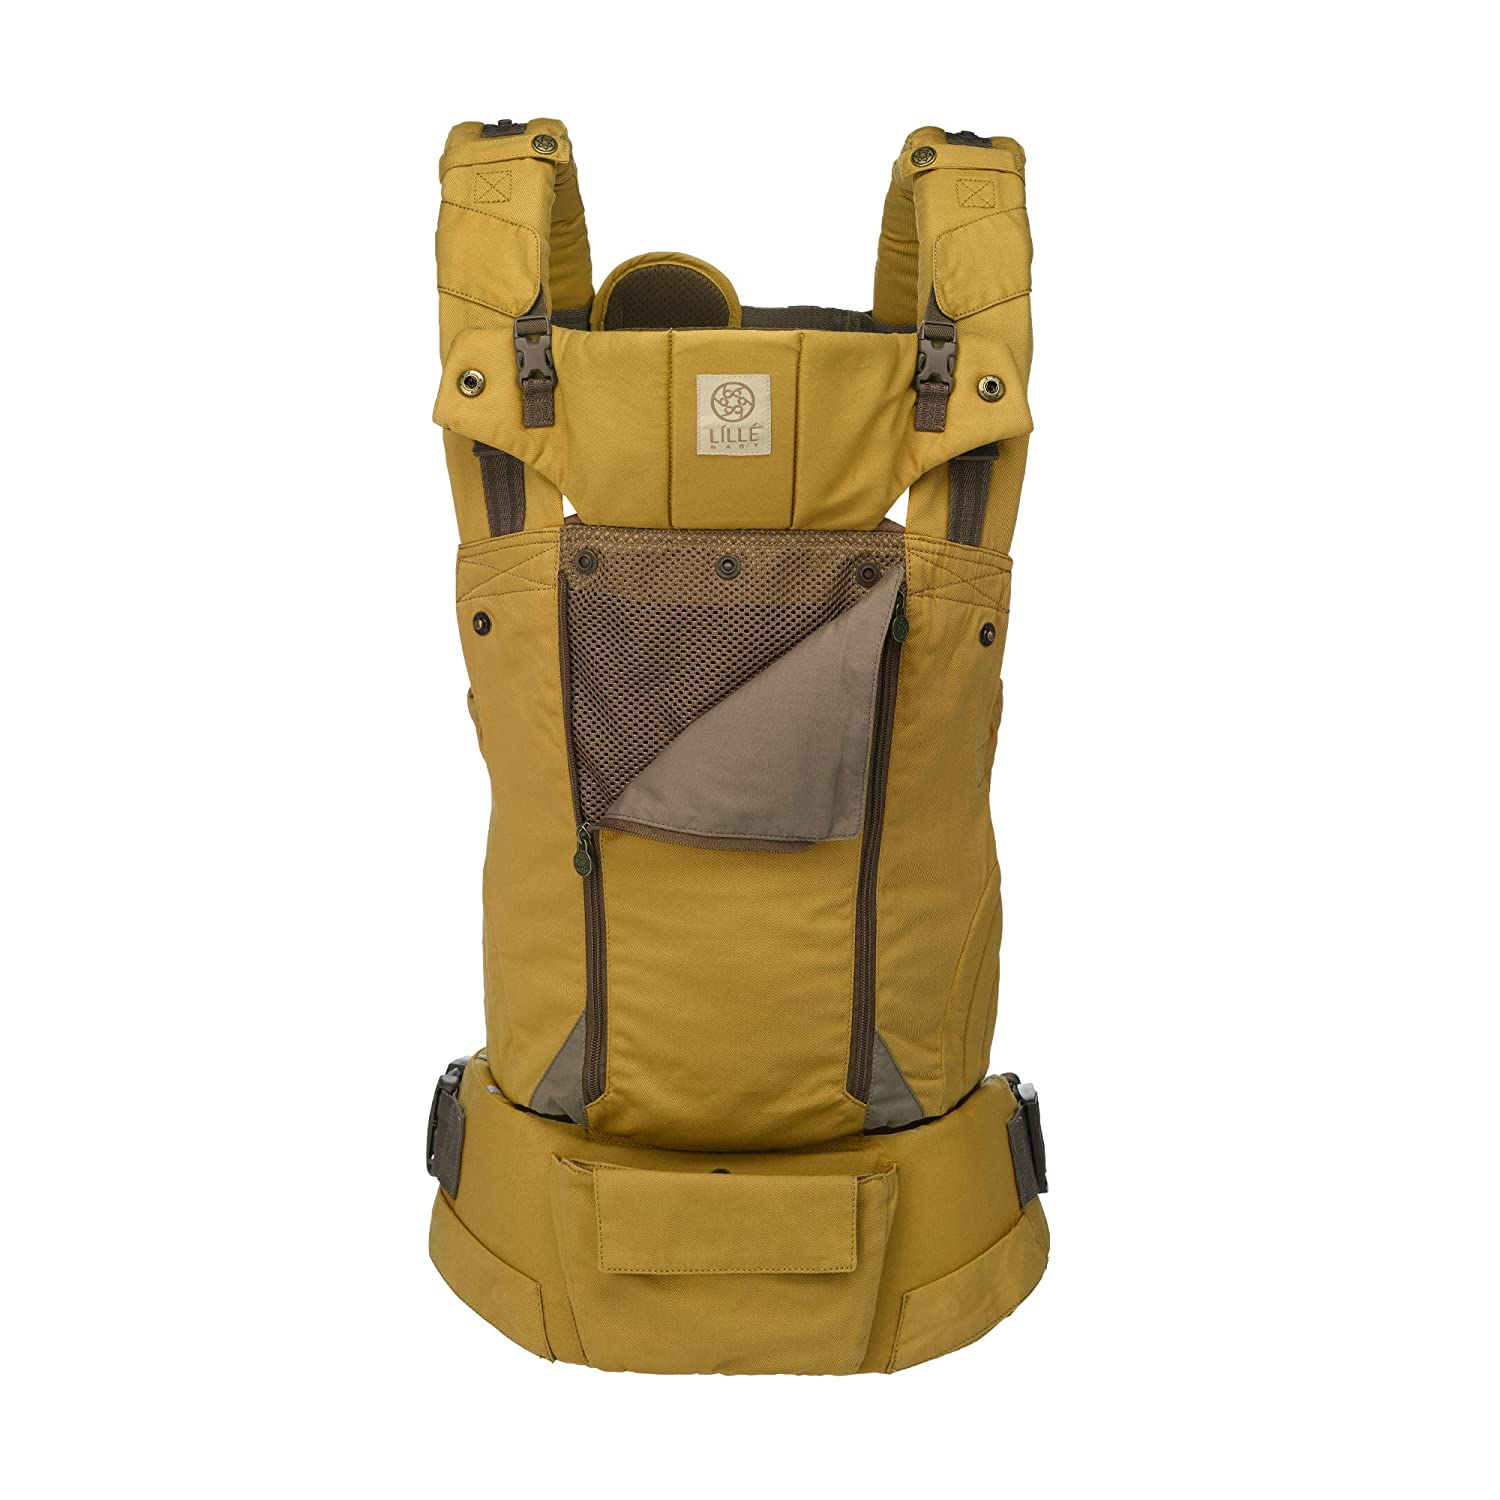 L/ÍLL/Ébaby Serenity All Seasons Six-Position Ergonomic Baby and Child Carrier with Convertible Tote Amber Plume